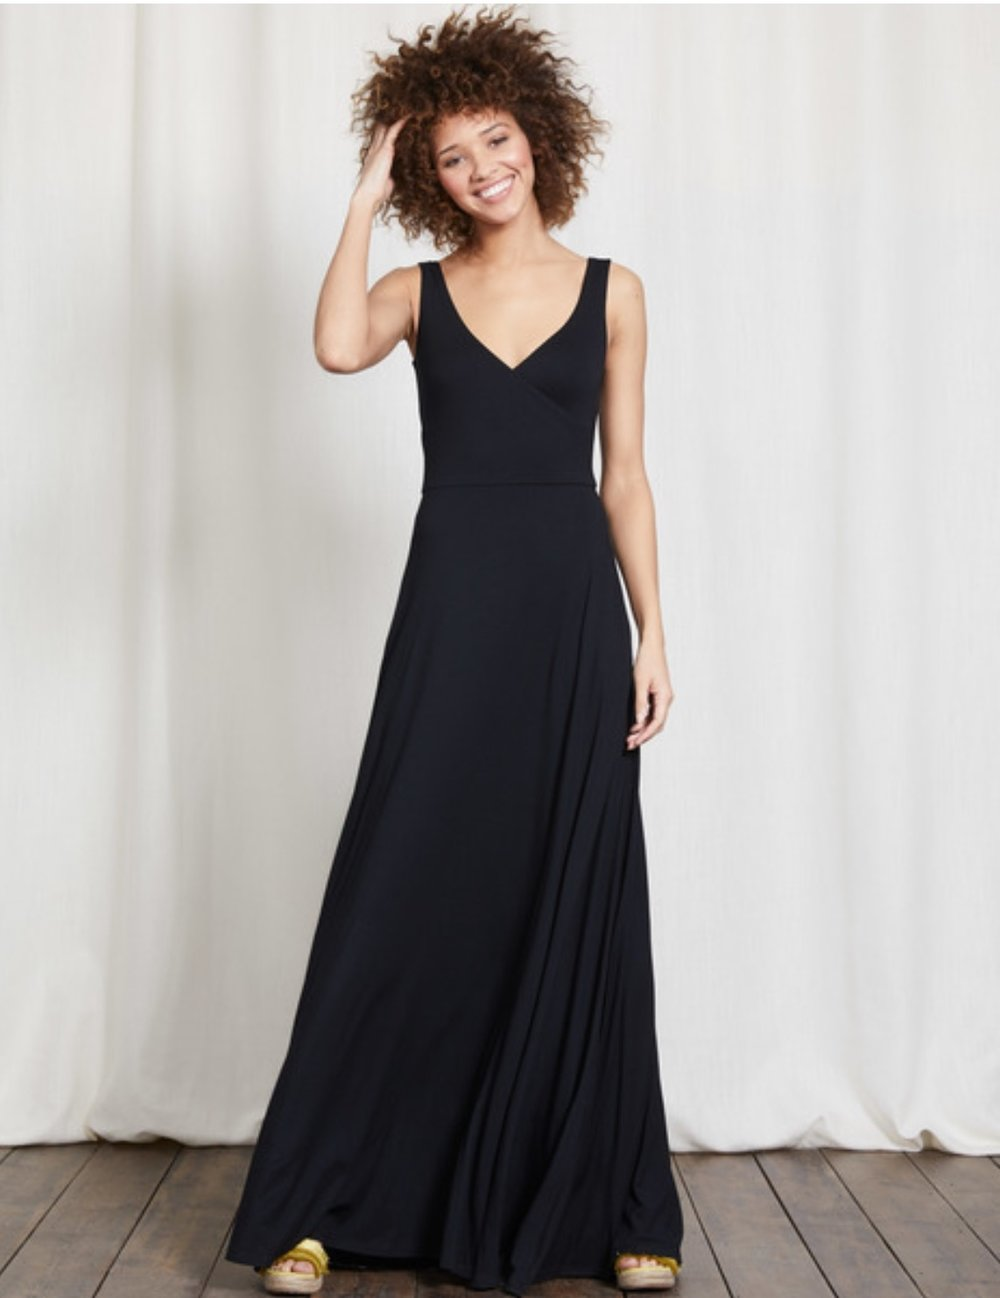 Love this another dress you could drag out anytime.